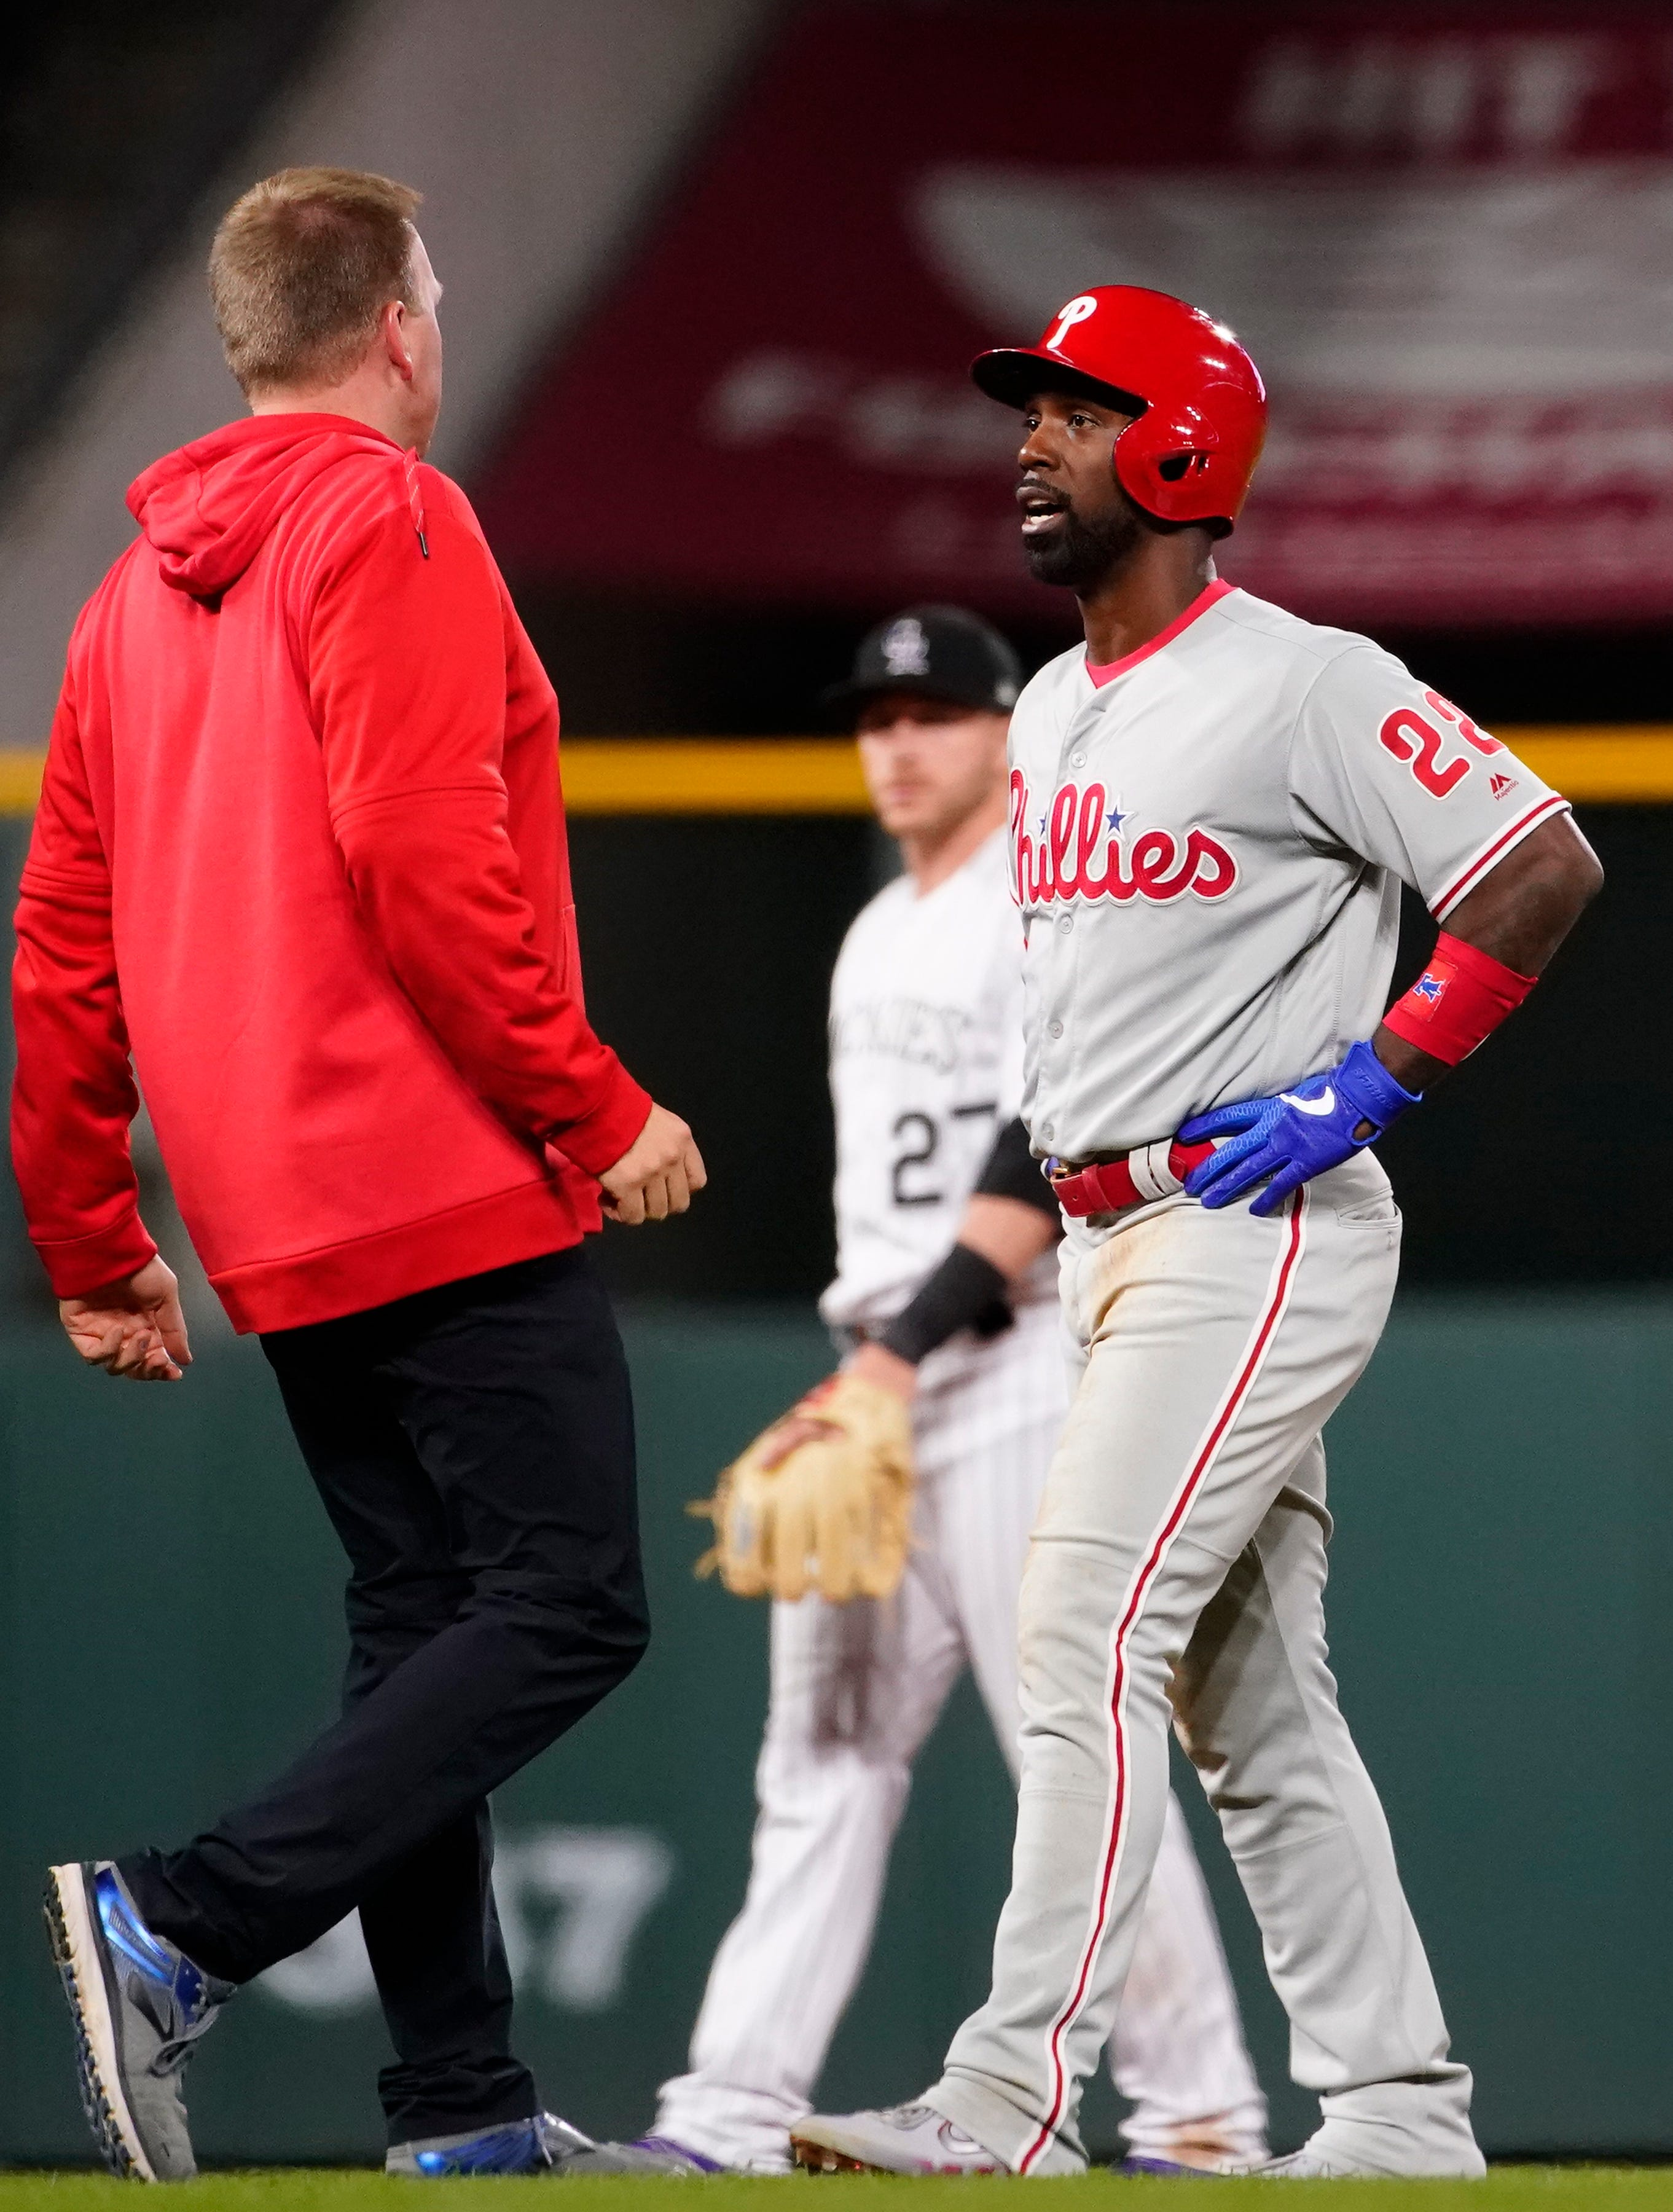 Phillies' Kingery, McCutchen leave with injuries